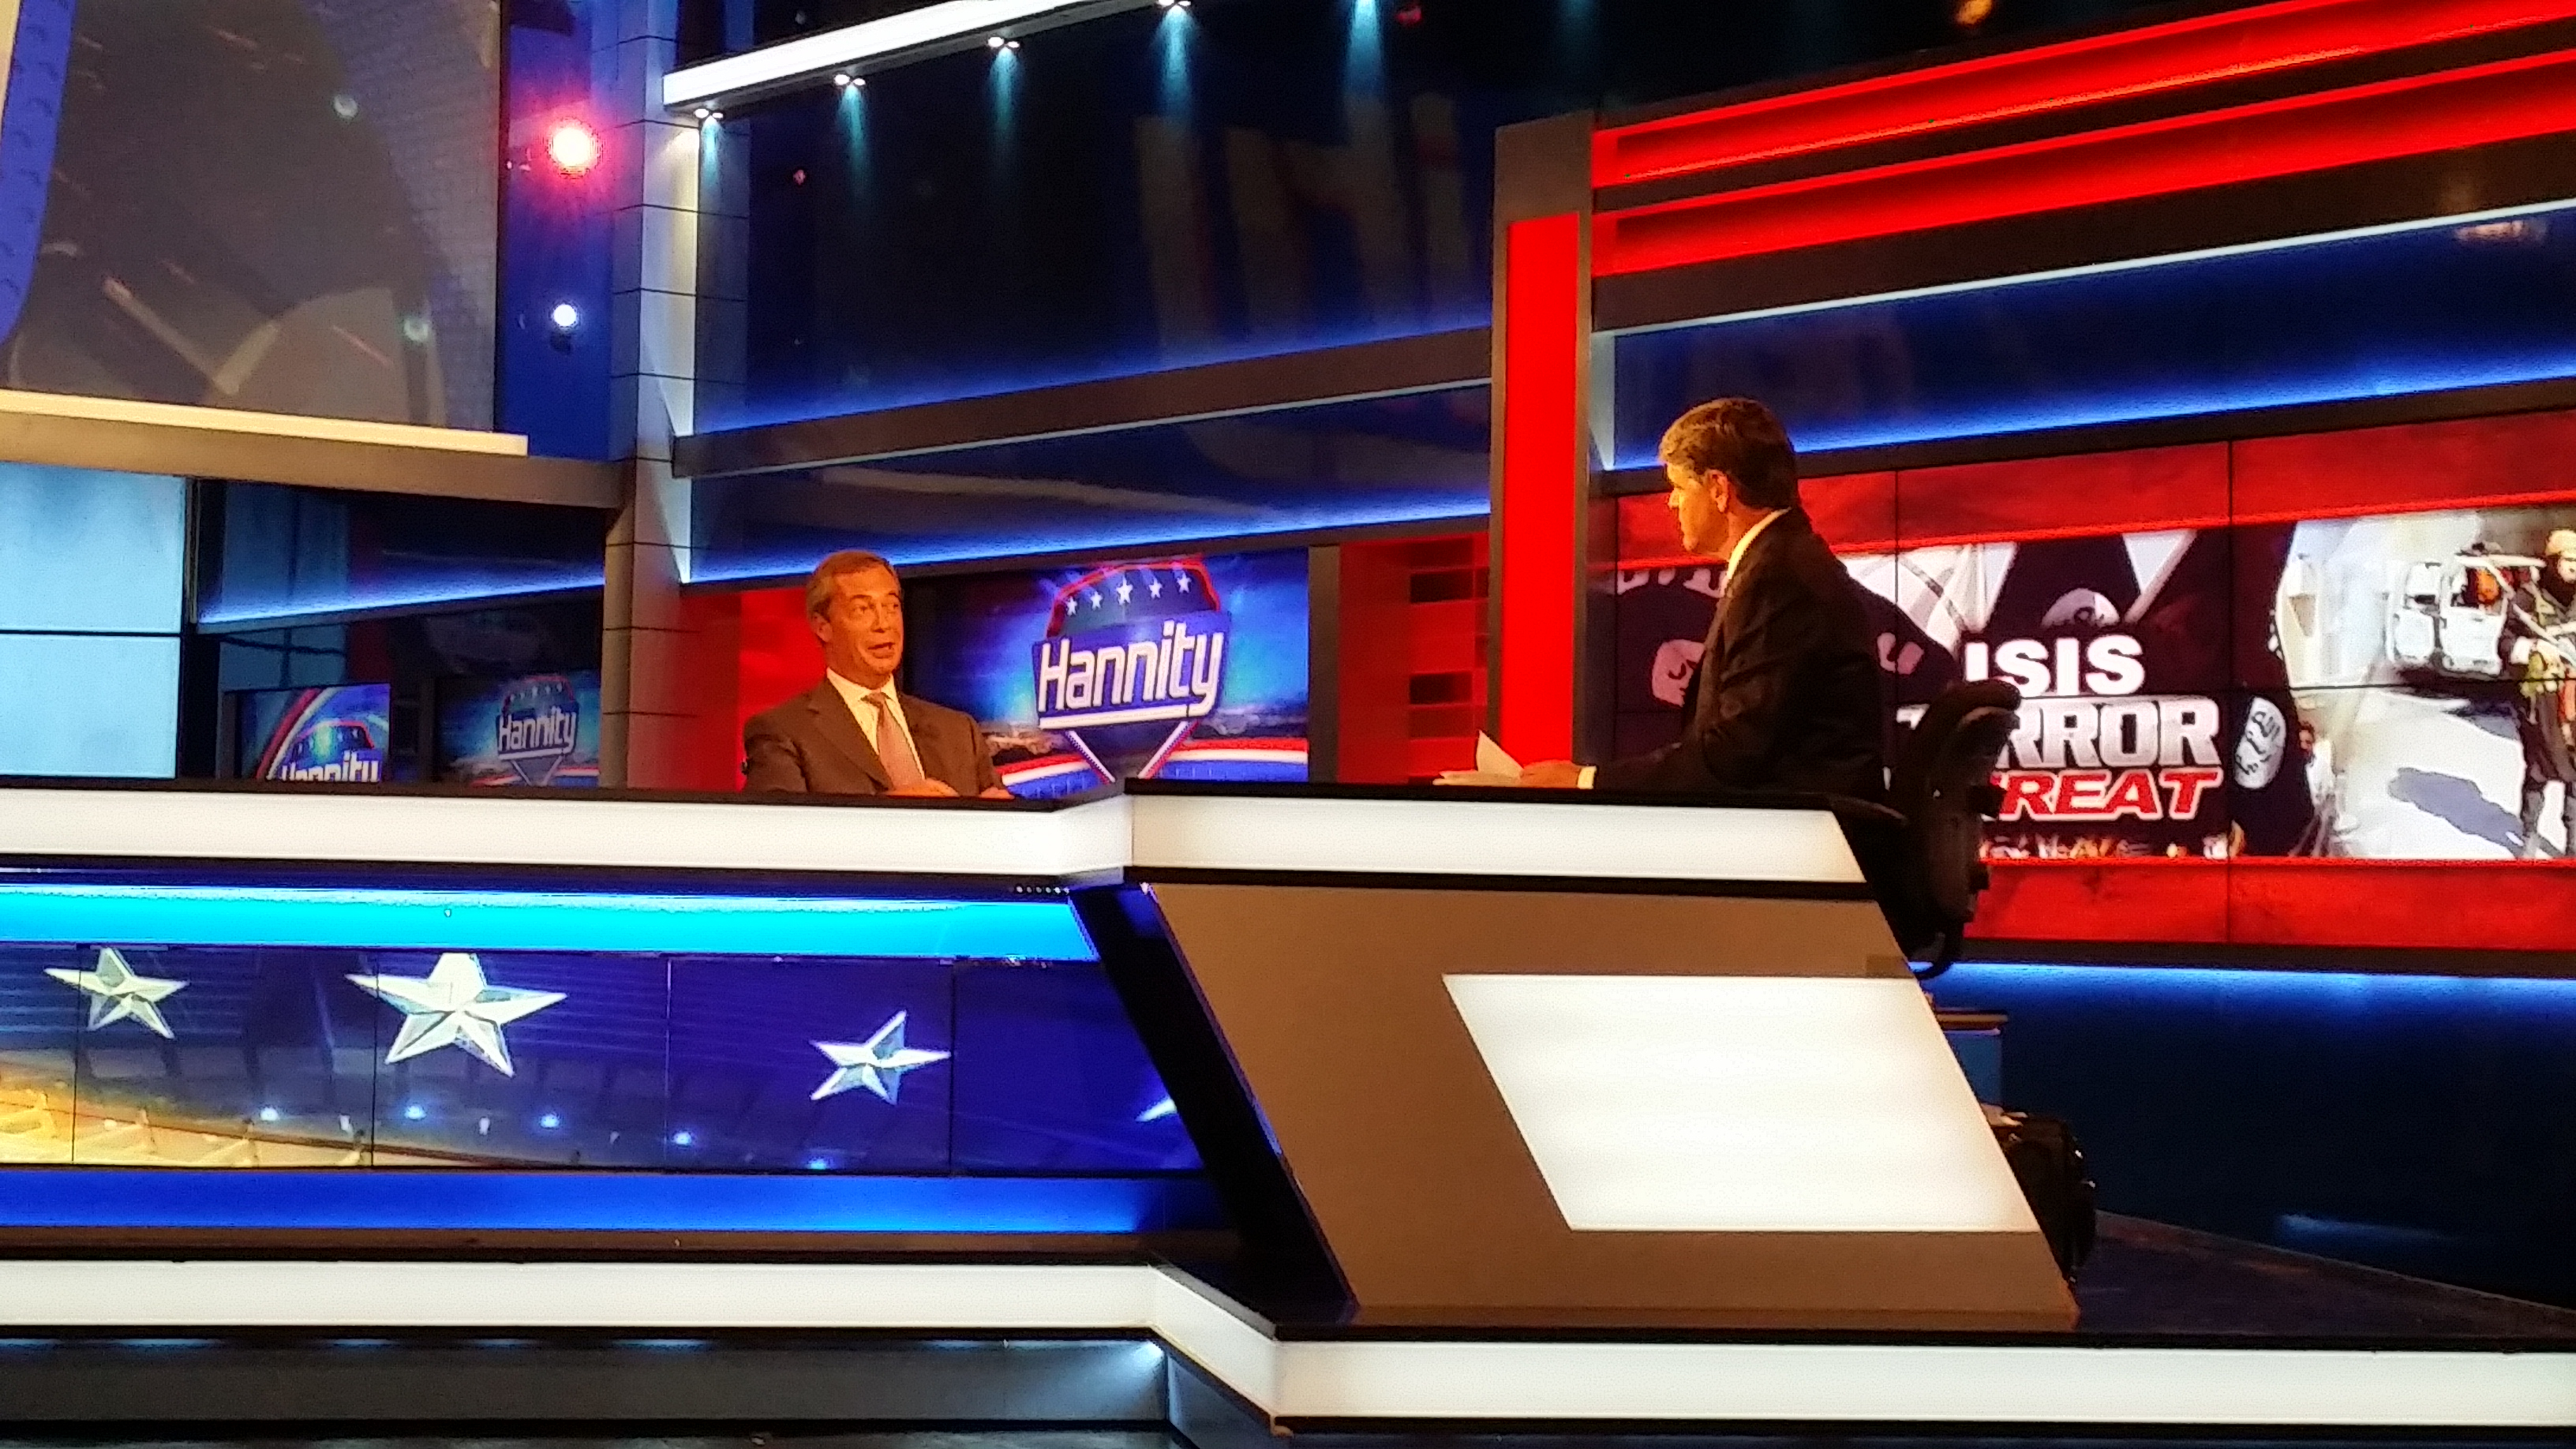 WATCH: Nigel Farage on Fox News' Hannity Show… 'Cameron is Following My Lead'